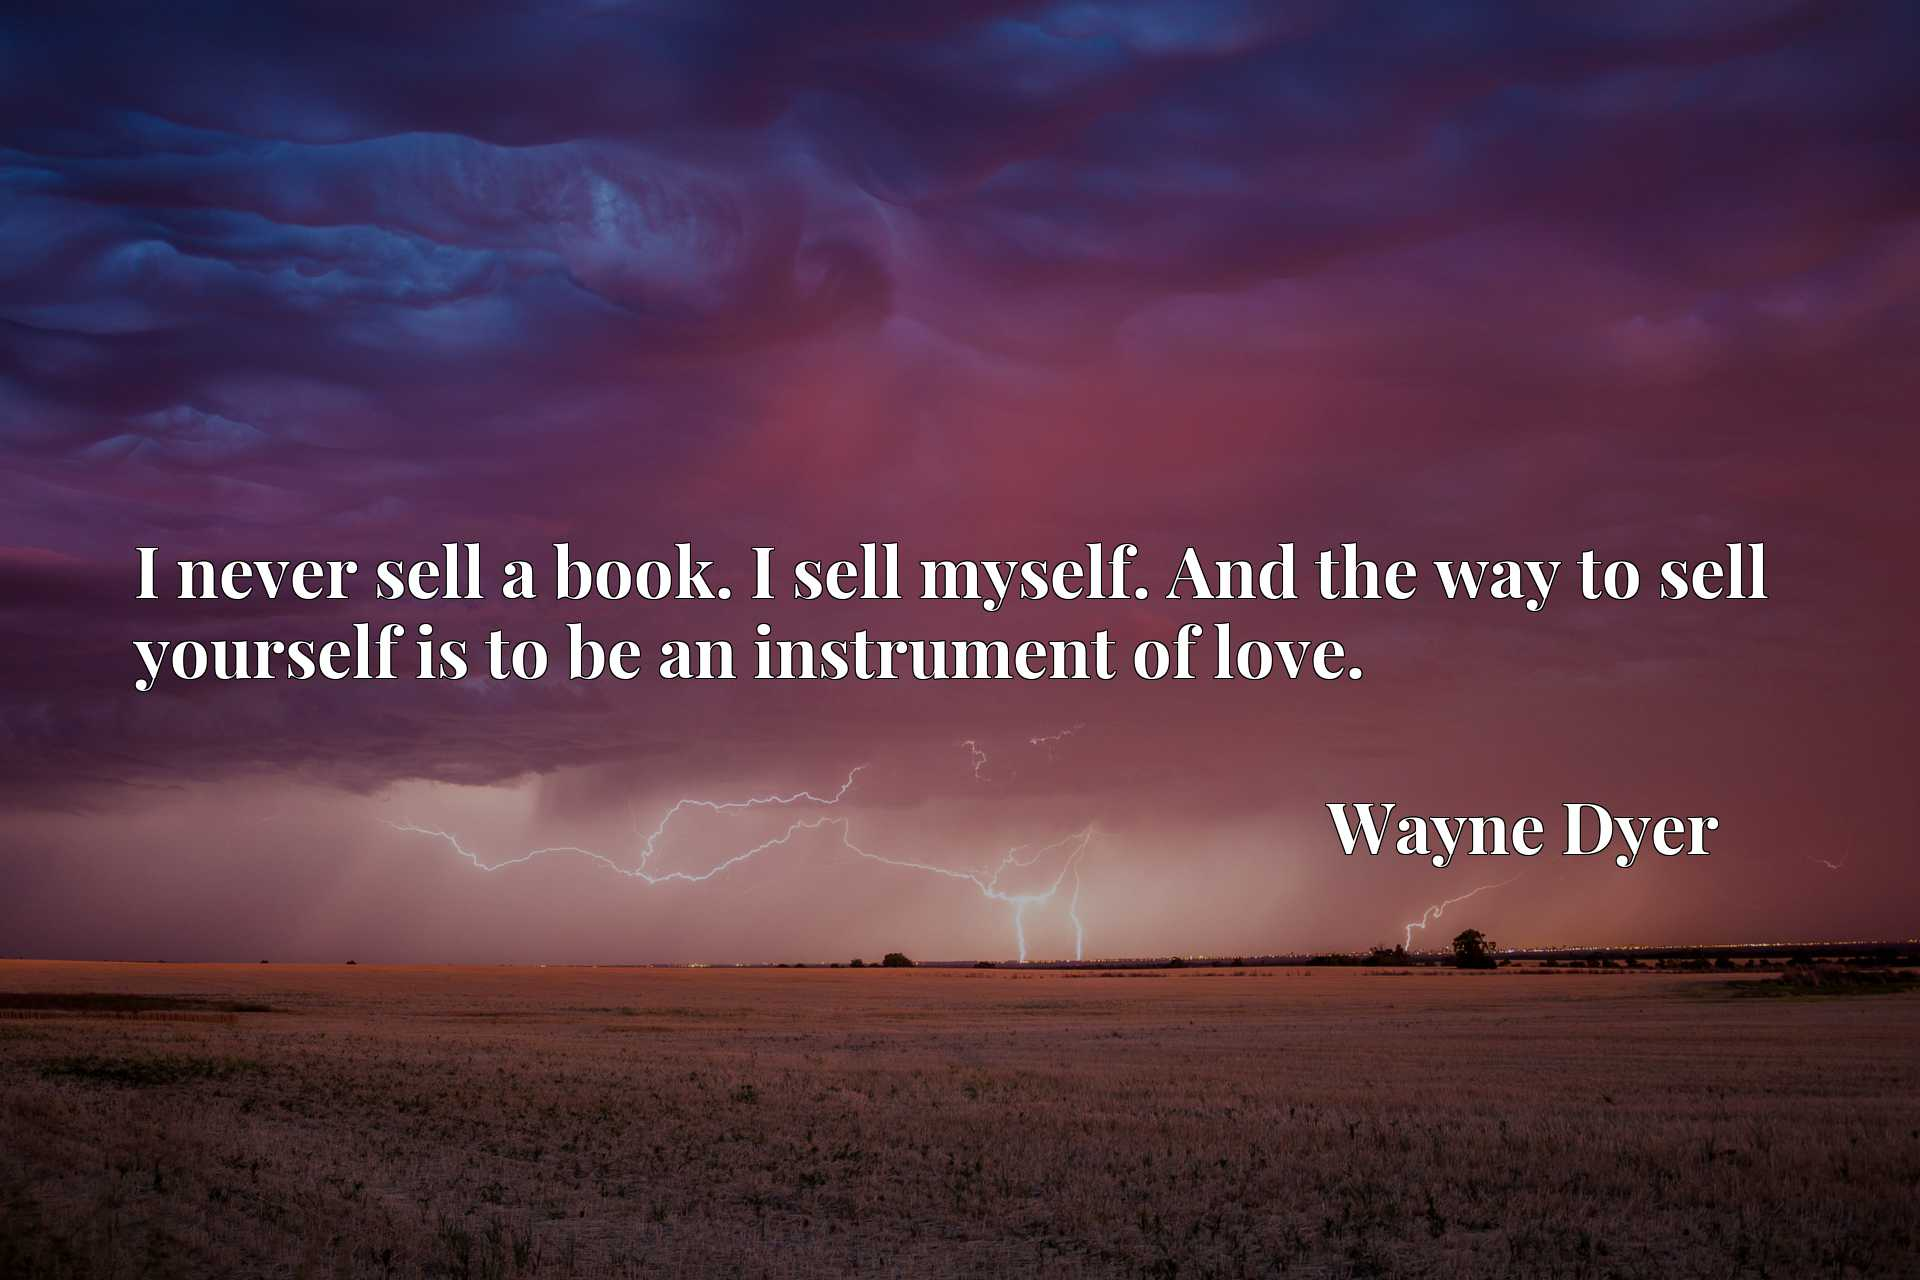 I never sell a book. I sell myself. And the way to sell yourself is to be an instrument of love.